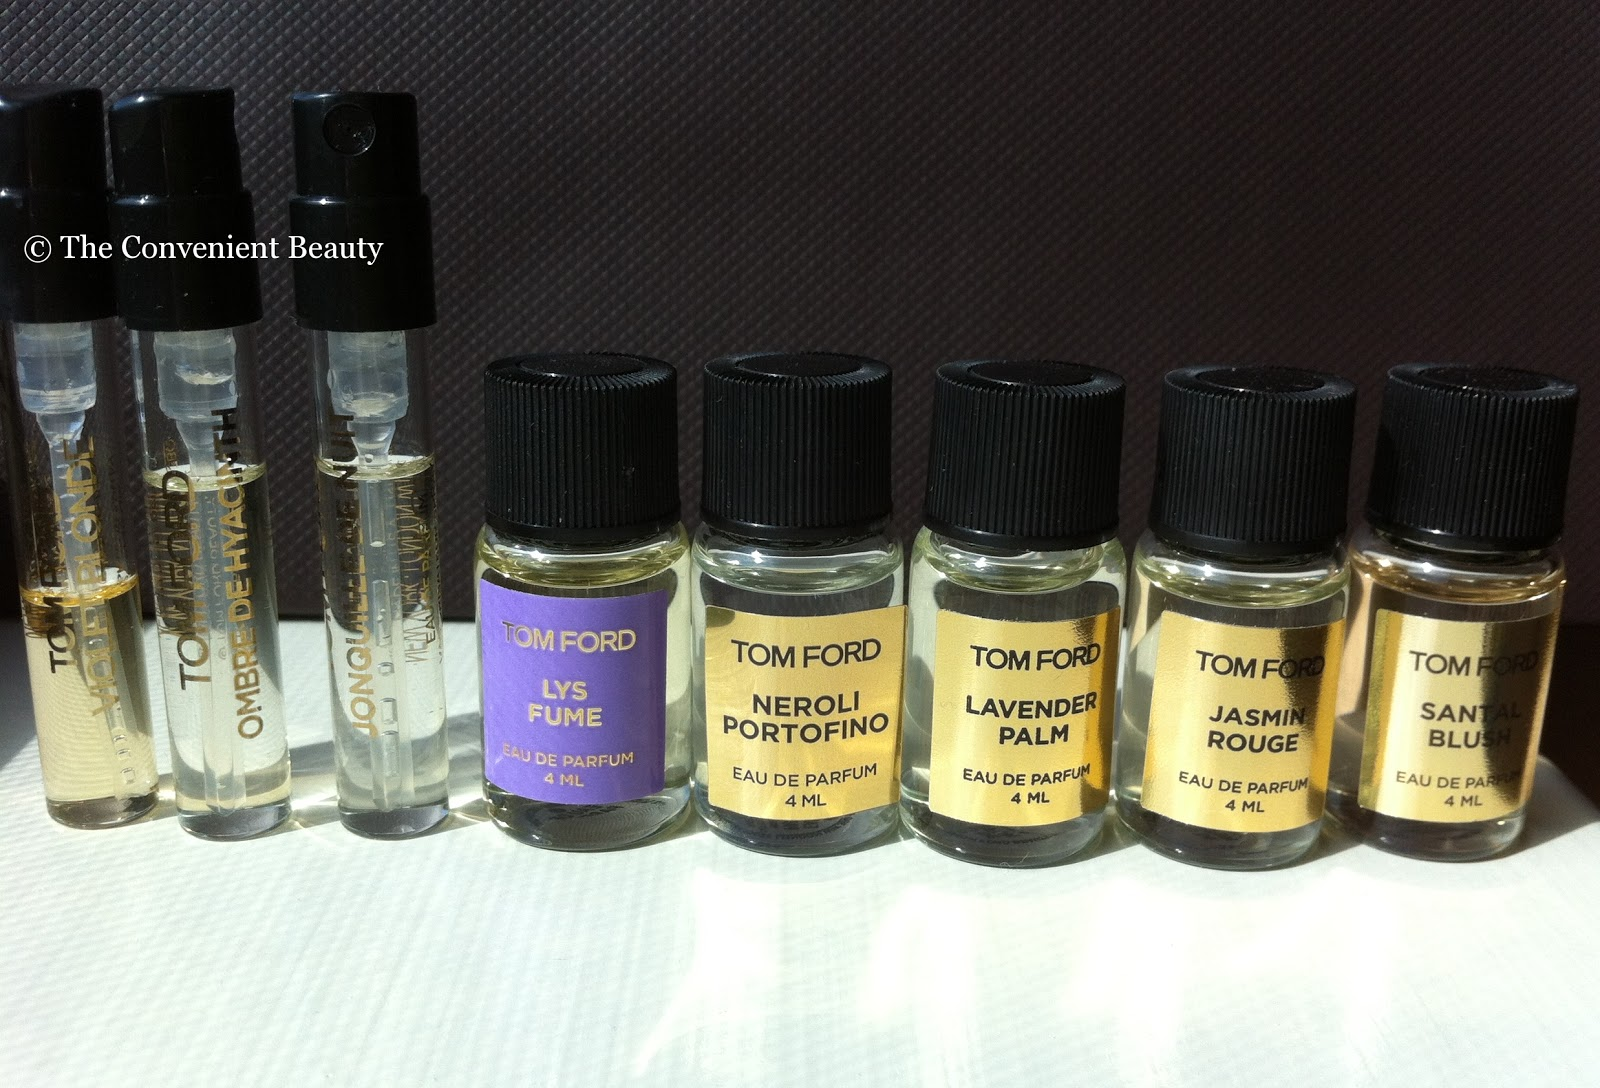 The Convenient Beauty: Tom Ford Beauty Haul - First Impression